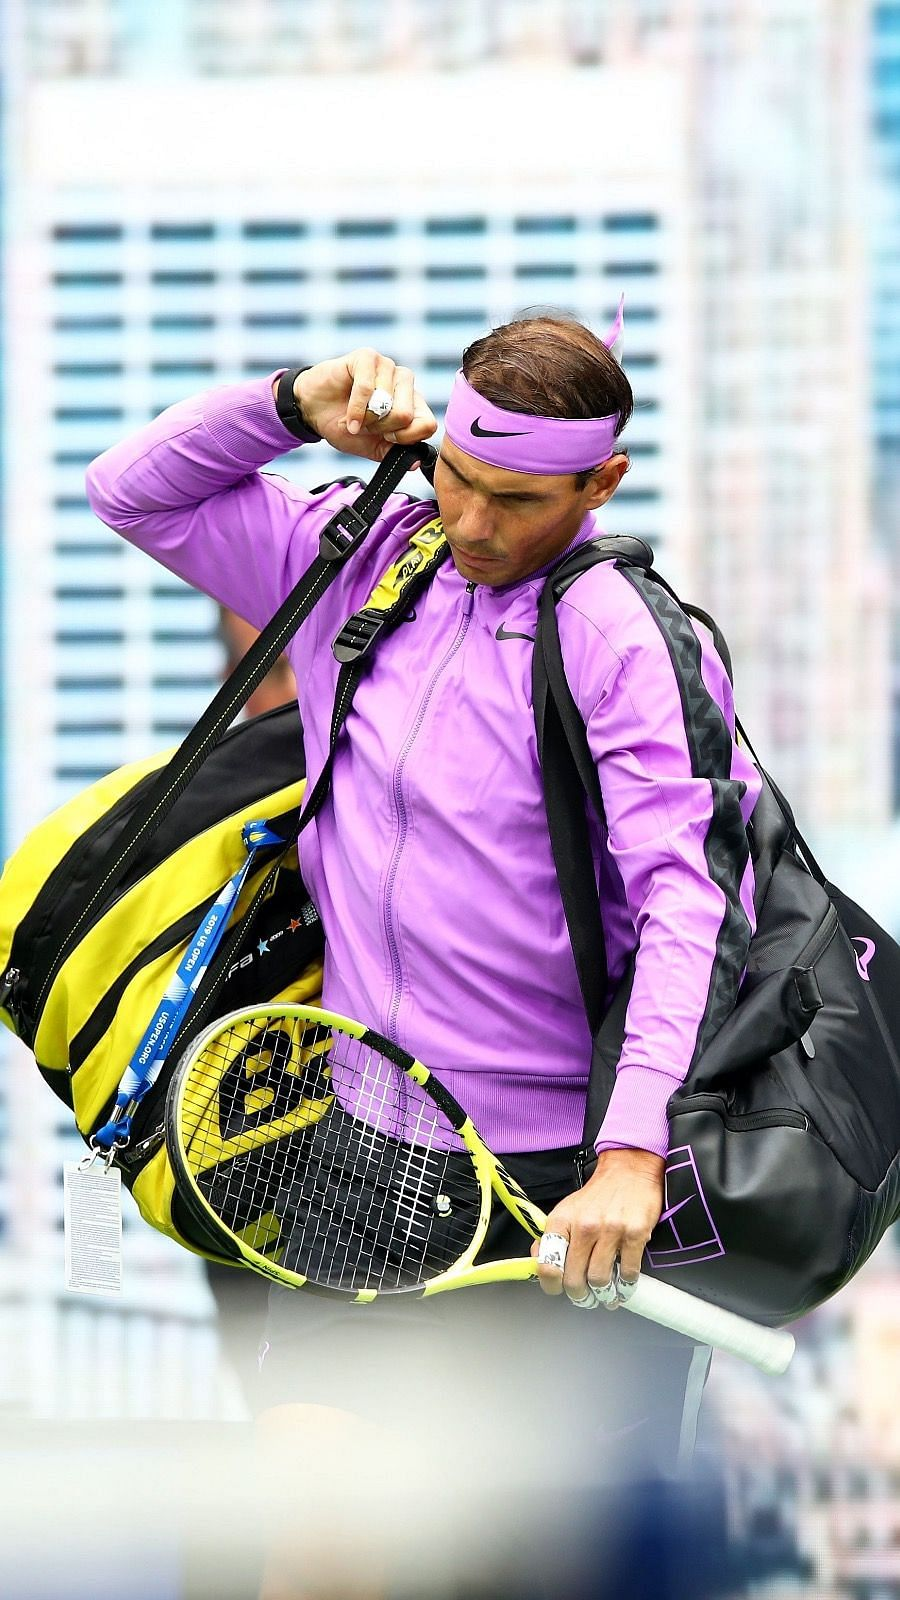 I Don T Think Rafael Nadal S Concern Is Remotely Virus Related Jim Courier On Uso Withdrawal